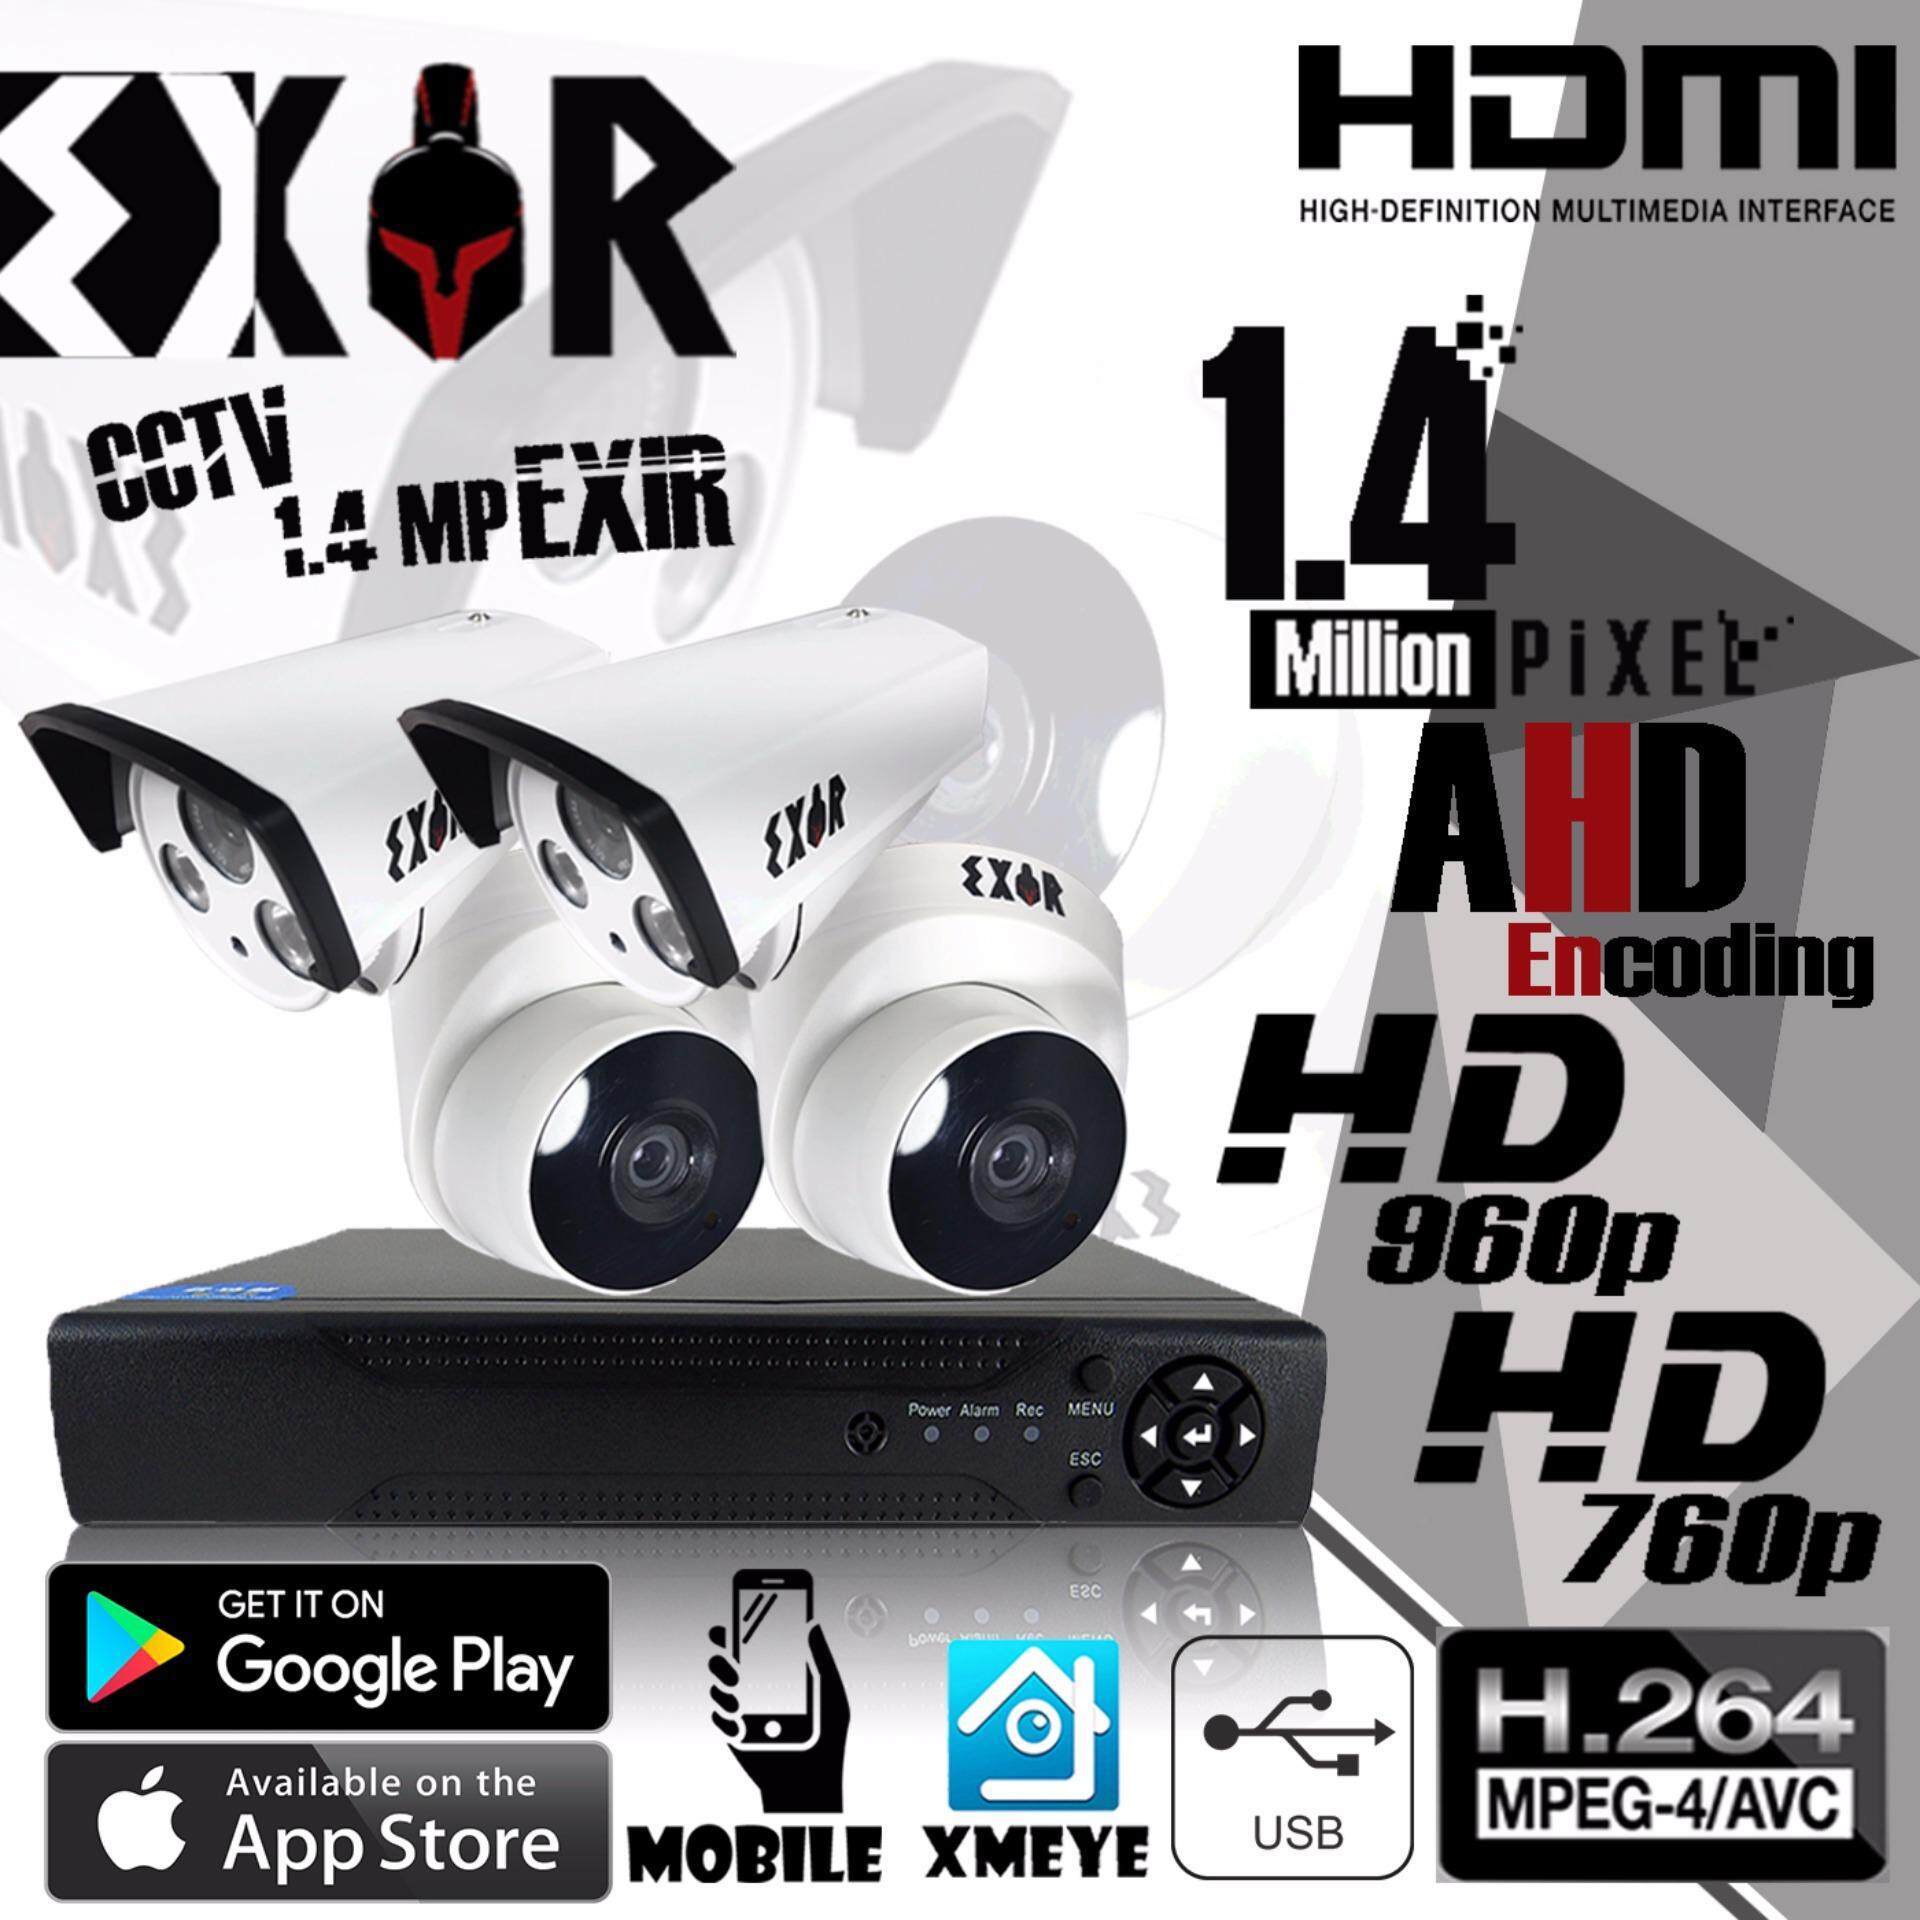 4CH 3IN1 Hybrid AHD / CVI / TVI DVR Kit set with HD 960P / 720P CCTV 1.4 MP Bullet and Dome Camera New 2018 Model 4 pieces - intl